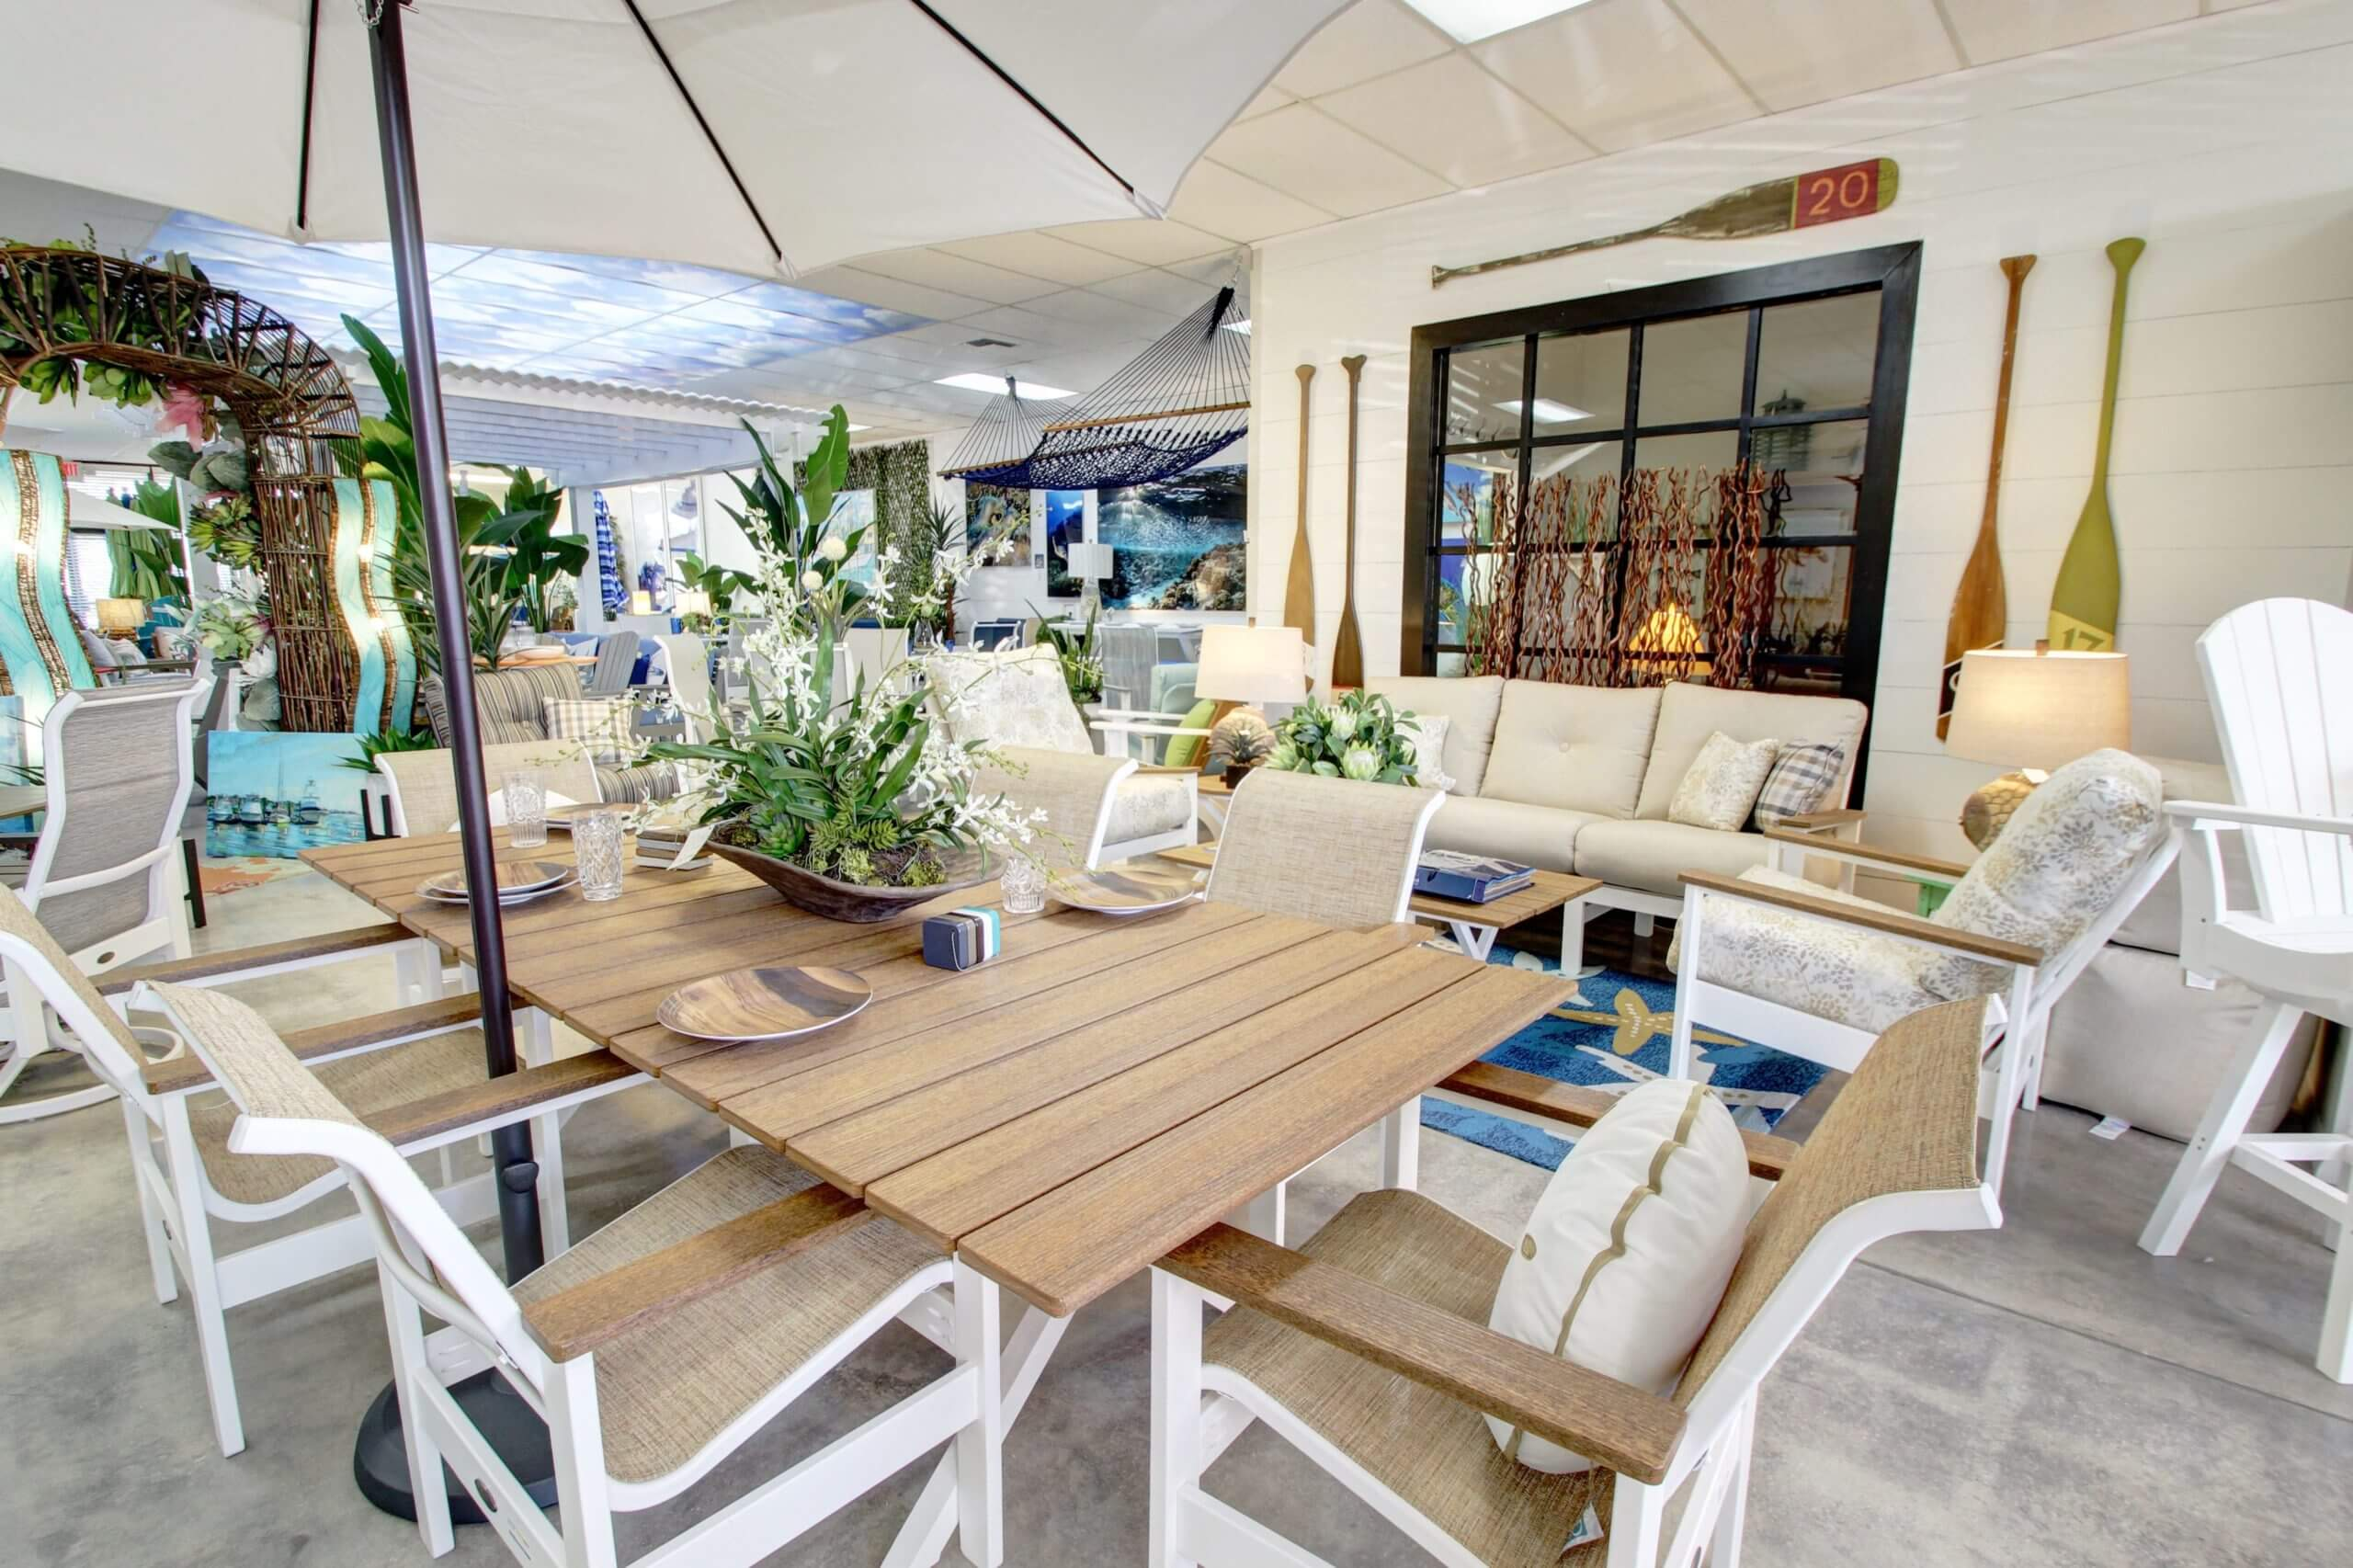 About Us - Casual Living Patio & Poolside on Casual Living Patio id=65326